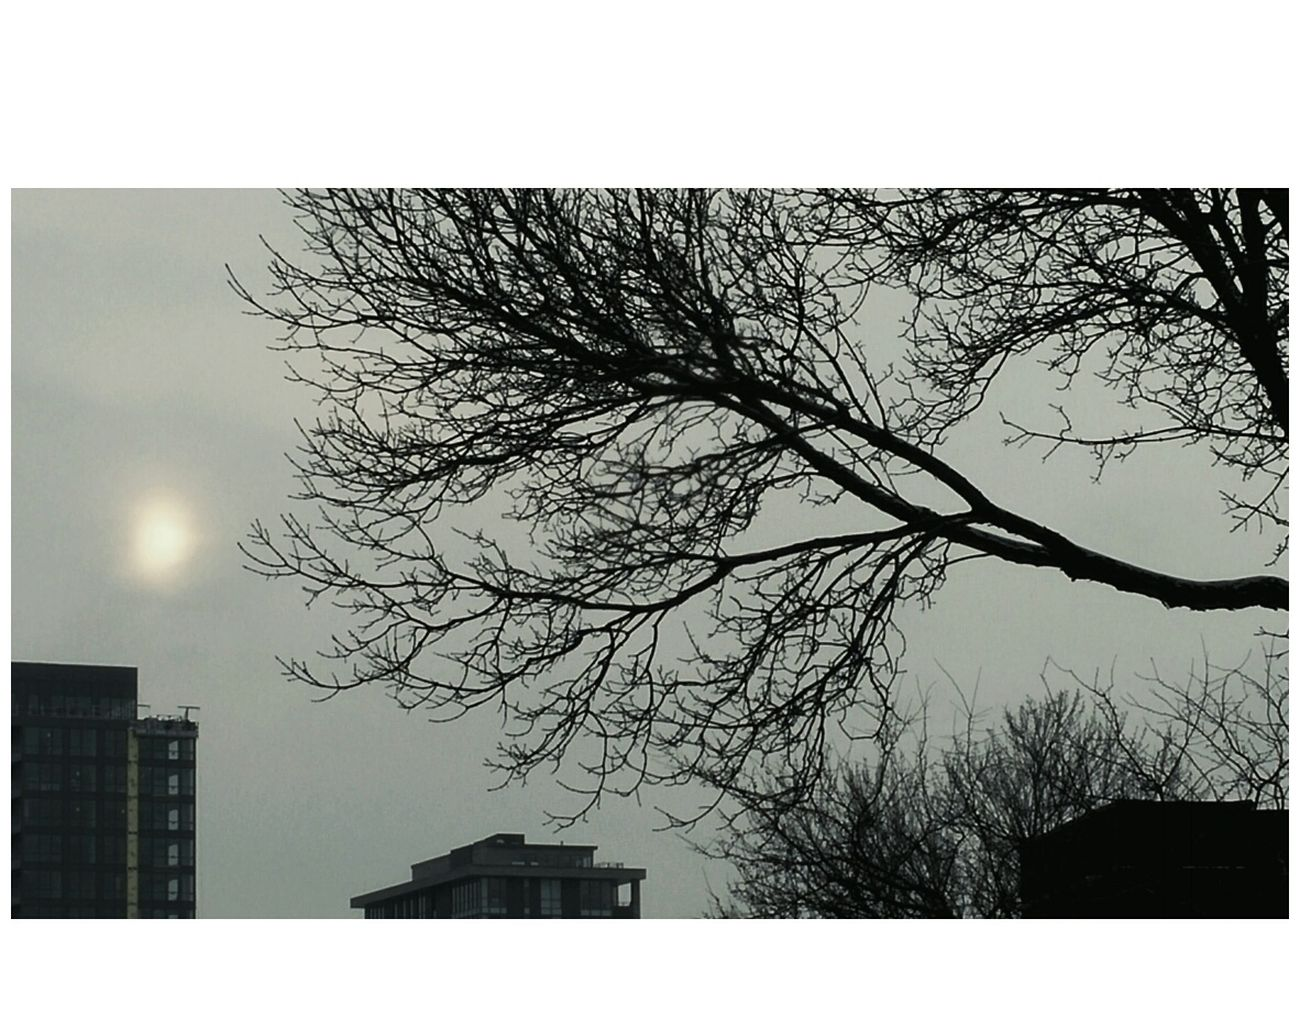 Misty Sun Tree Bare Tree Branch No People Building Exterior Sky Nature Outdoors Built Structure Day Sun Weather Montreal, Canada EyeEm Gallery Cold Temperature Winter 2017 Eyeem Awards Quebec Eye4photography  EyeEm Week City Minimalism_world EyeEm Best Shots Eyeem Canada Morning Sky